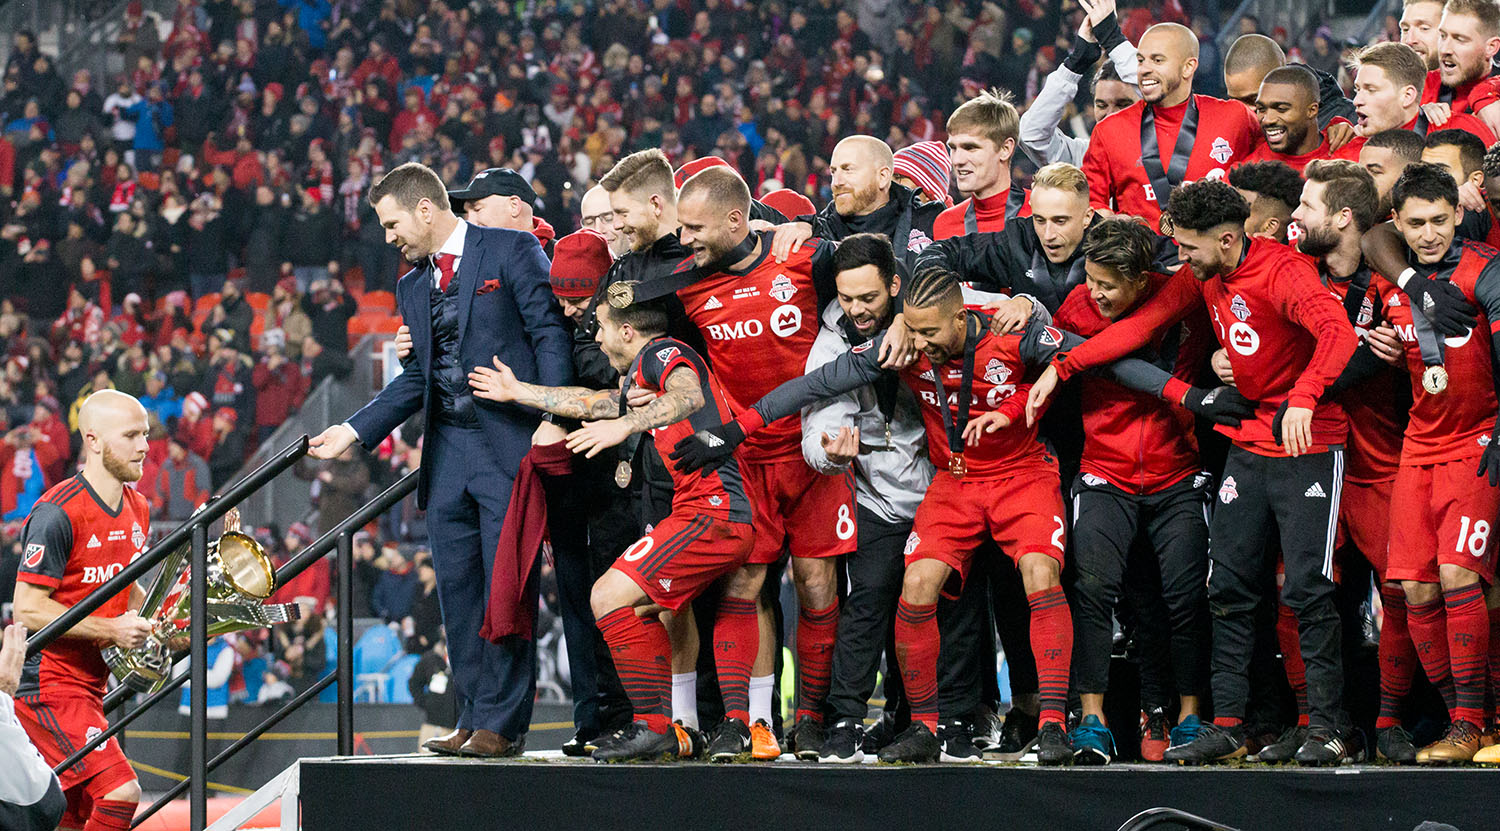 Michael Bradley taking the 2017 MLS Cup to the stage awaited by an excited Toronto FC.Image by Dennis Marciniak of denMAR Media.